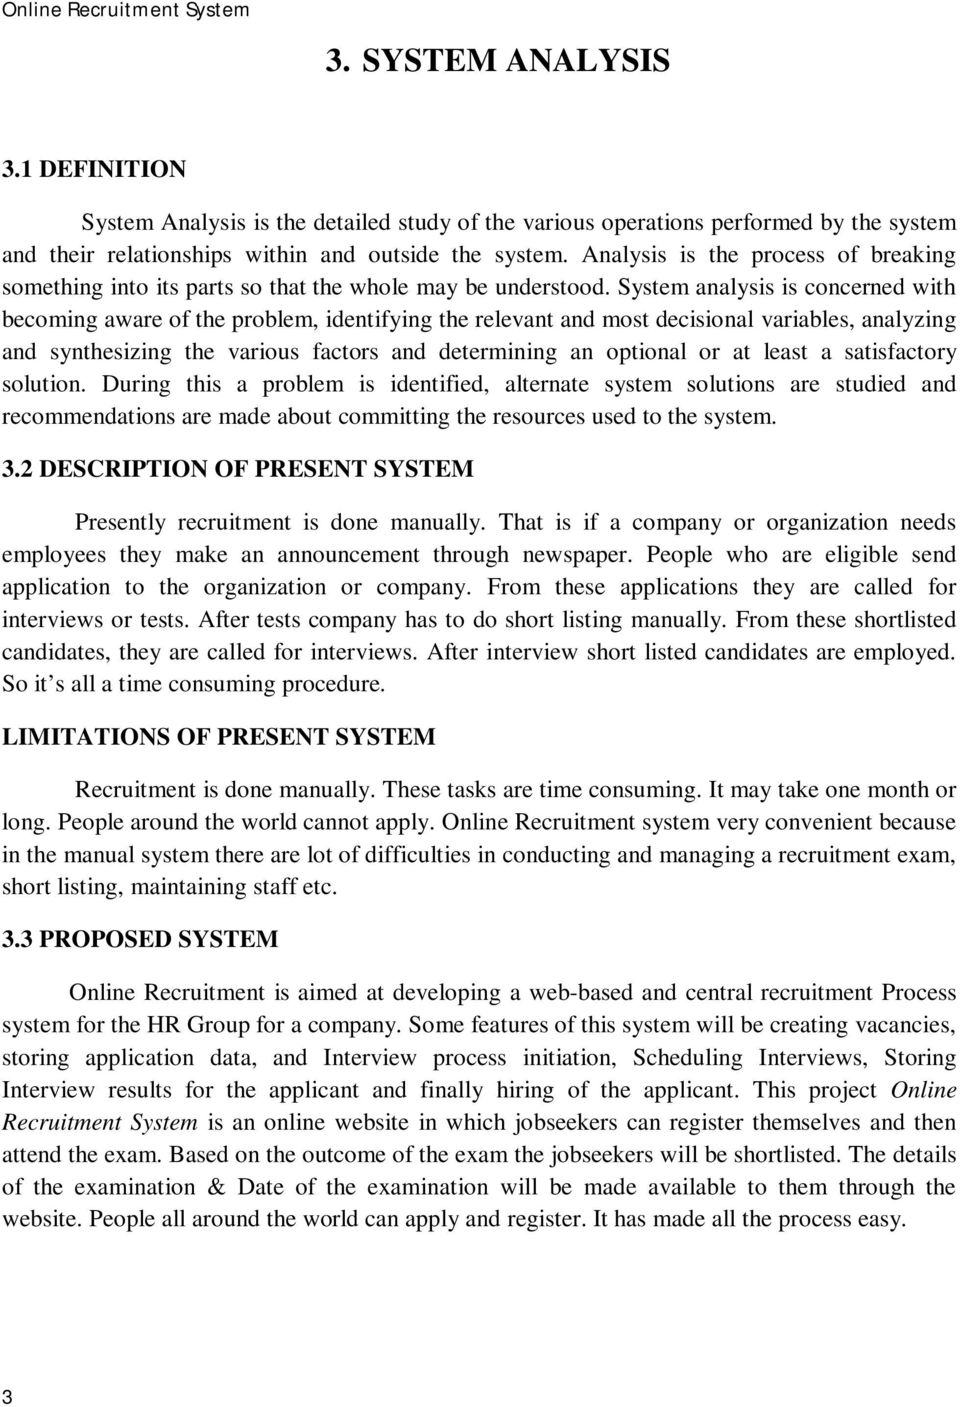 PDF) Online Recruitment System Project Report